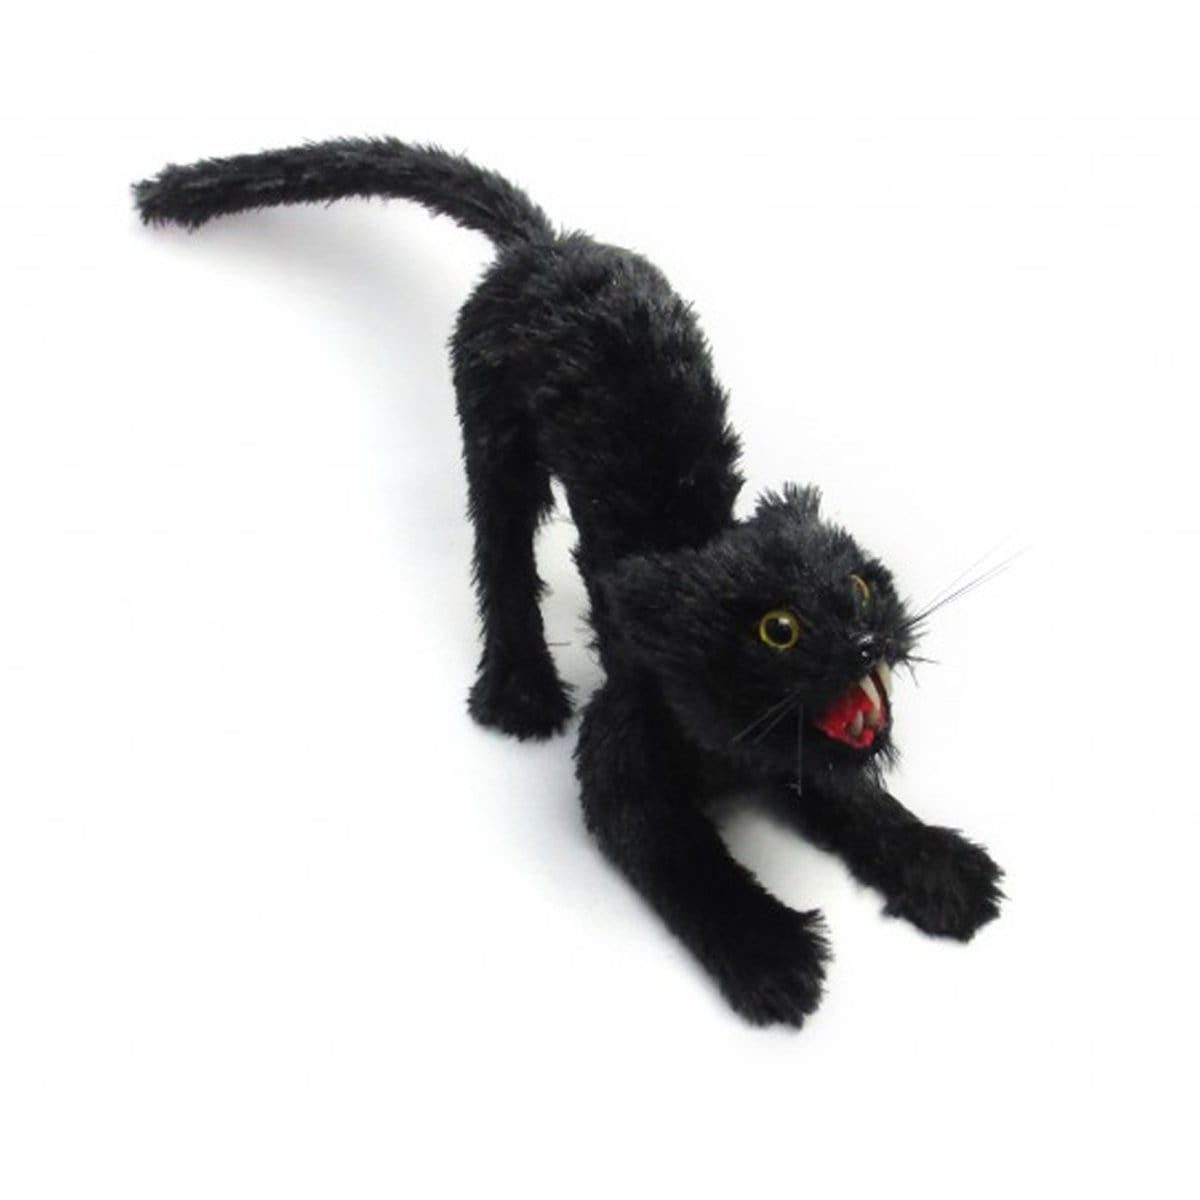 HALLOWEEN STUNNED BLACK CAT 30cm